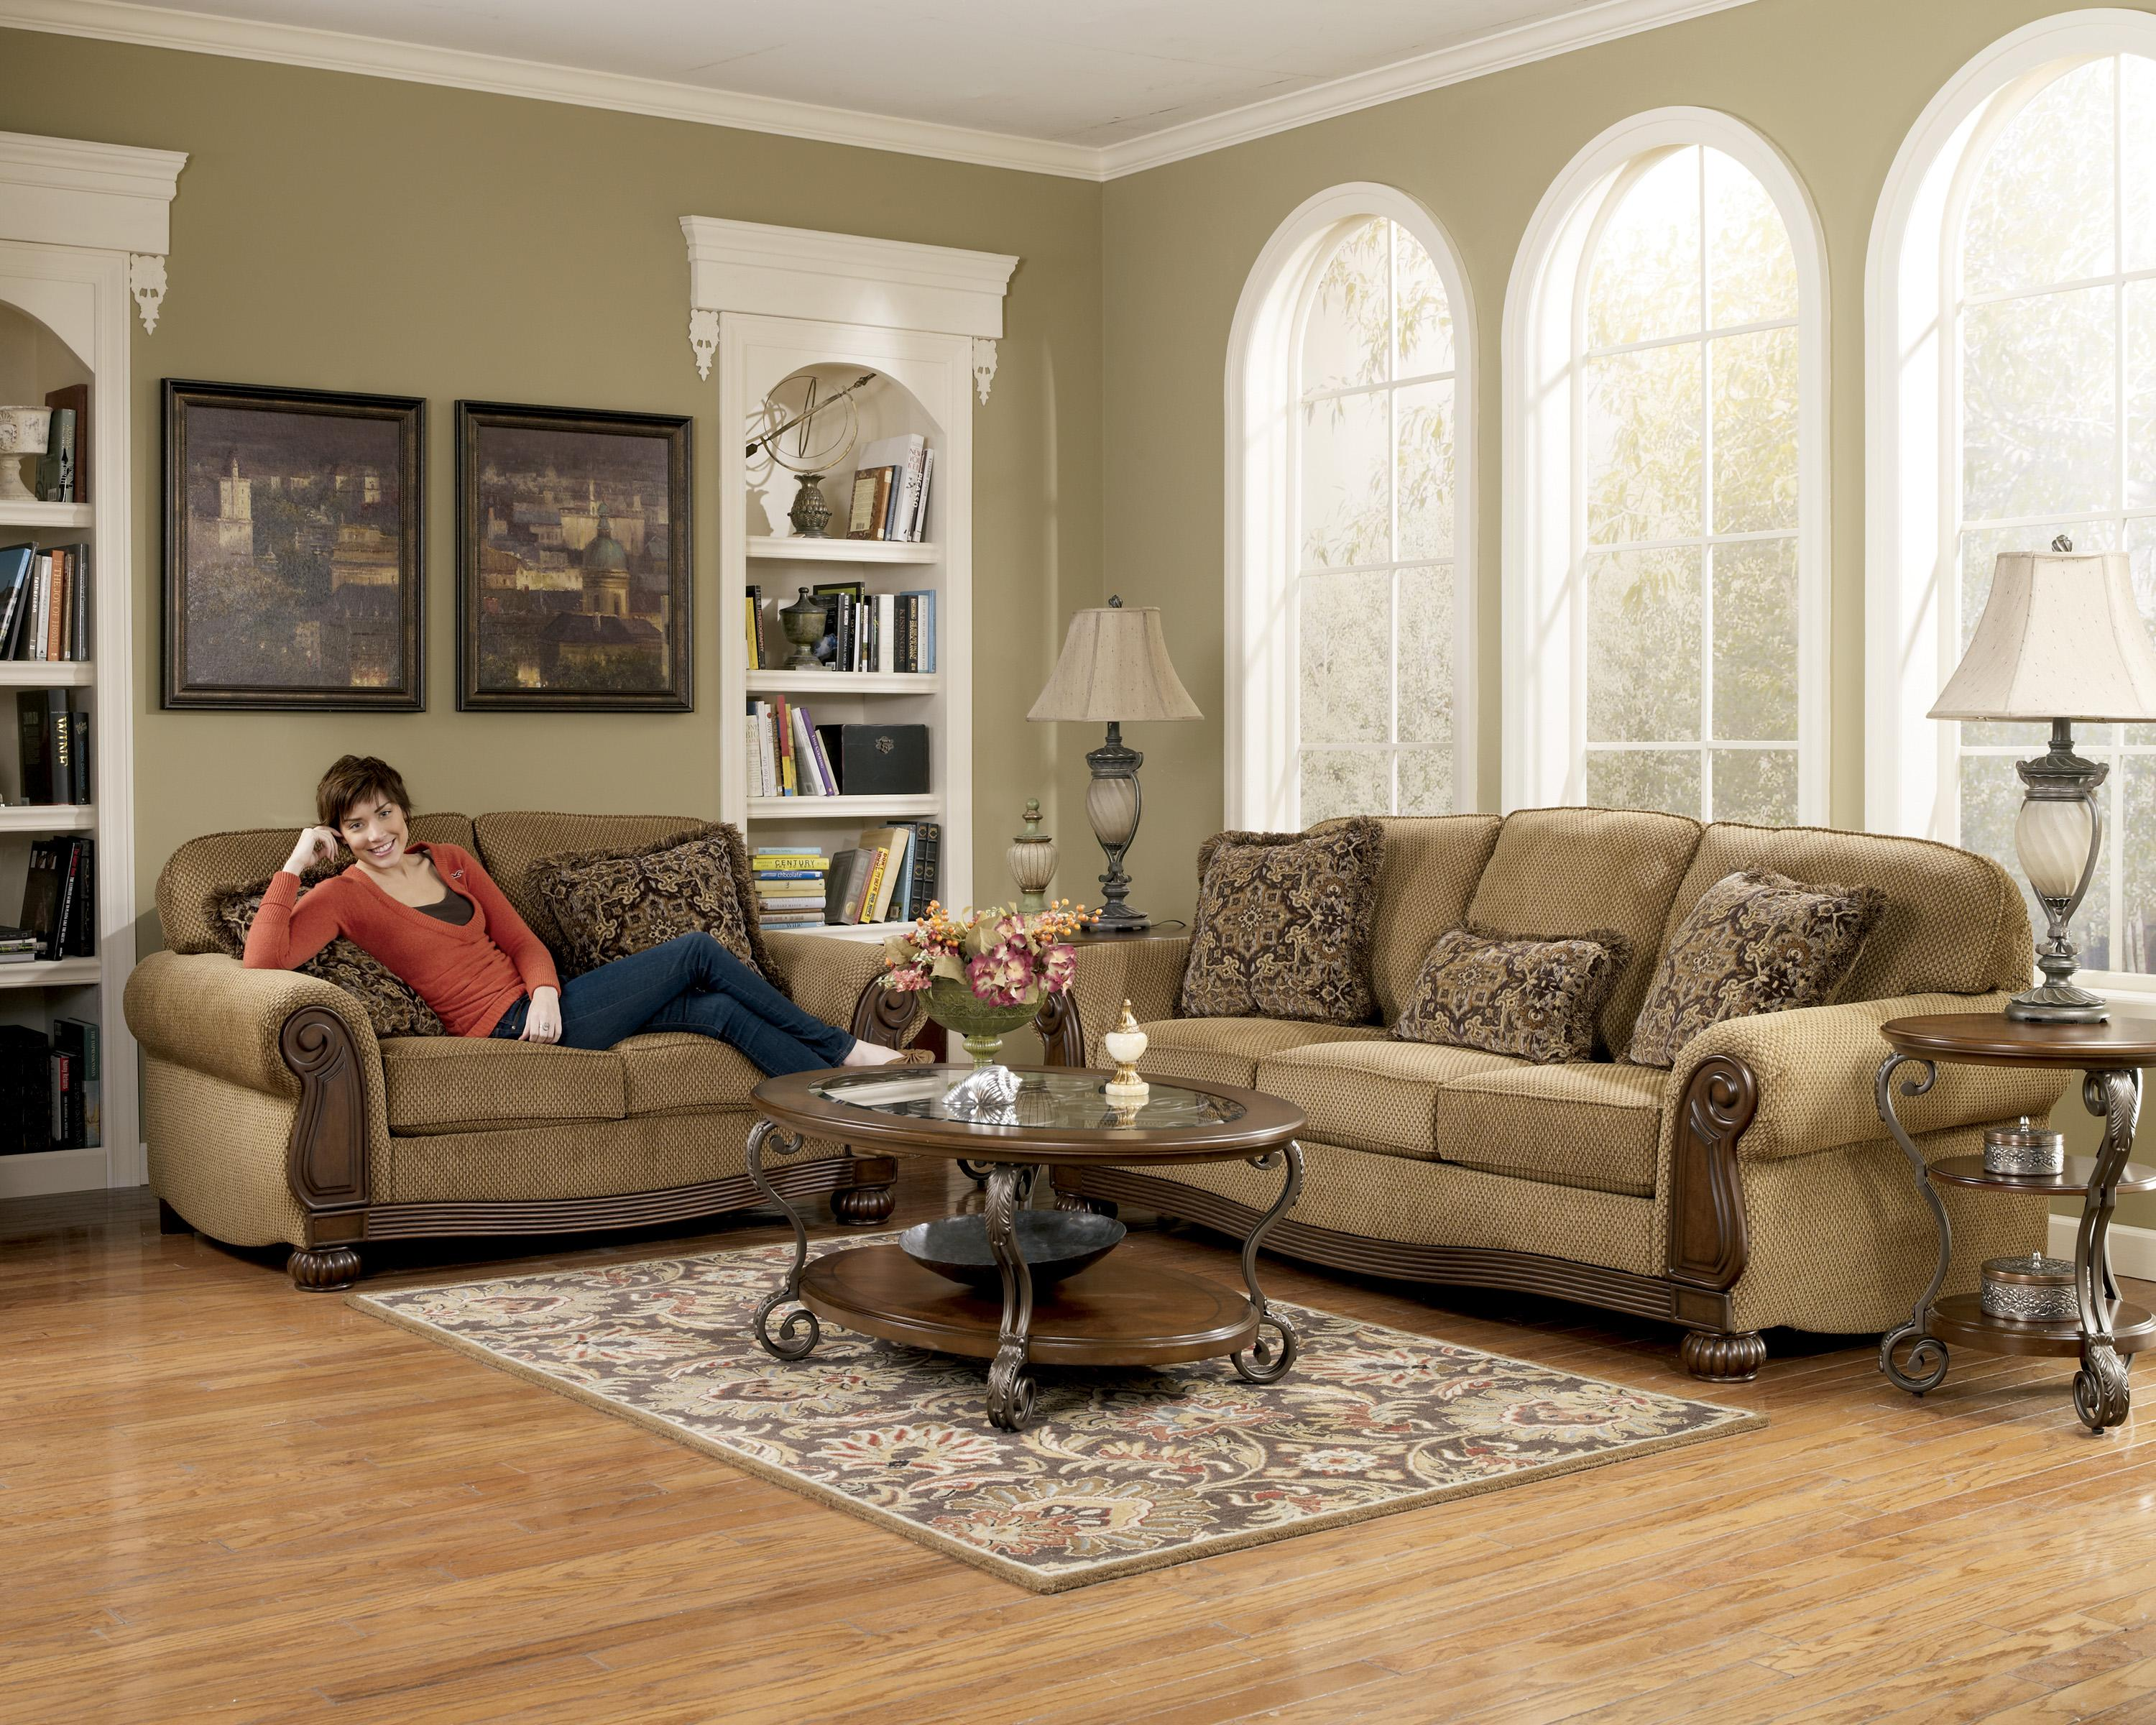 Lynnwood Amber 68500 By Signature Design By Ashley Del Sol Furniture Signature Design By